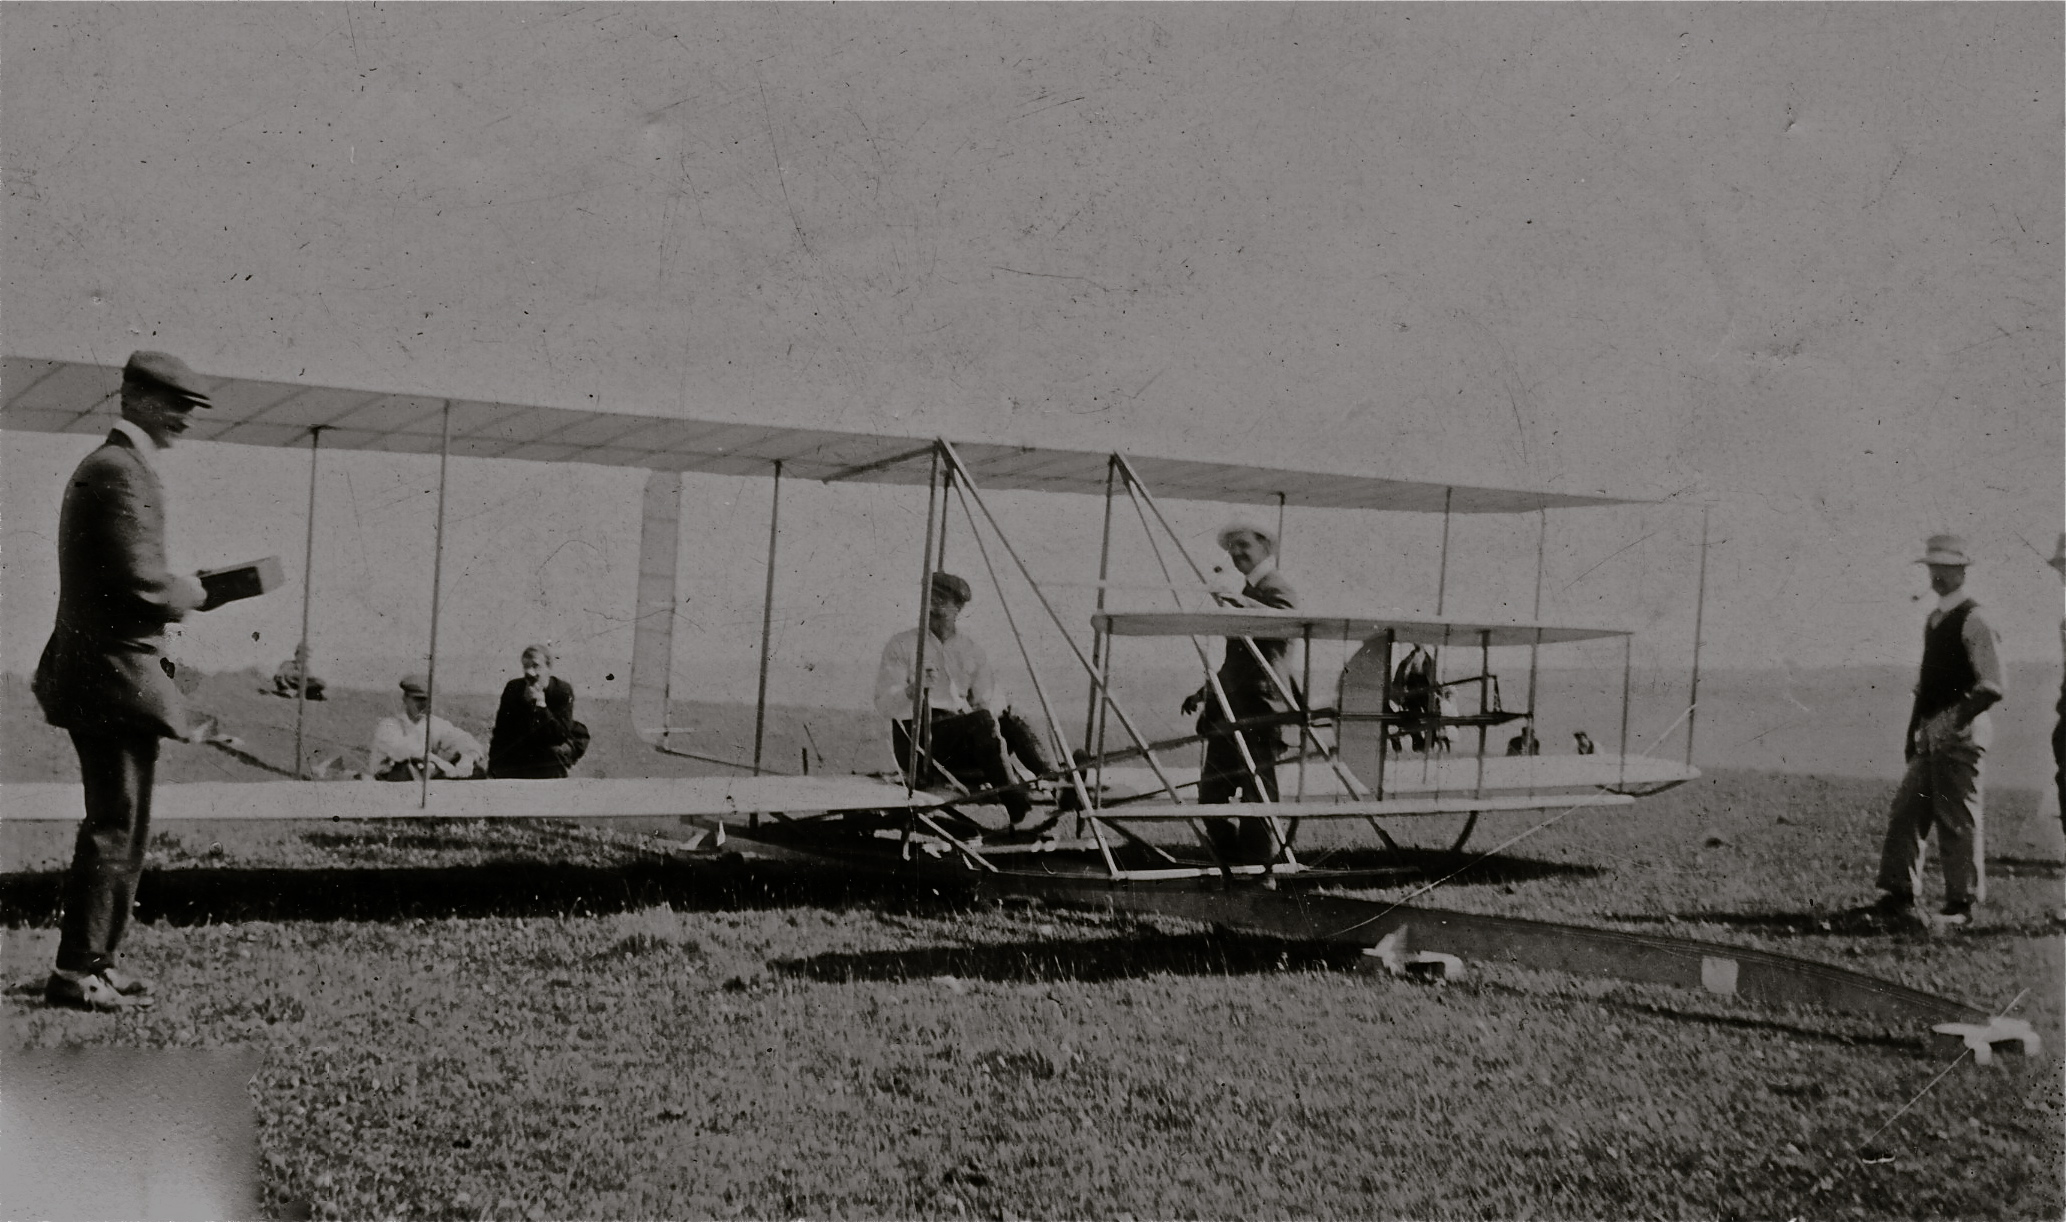 Plane at the Willows